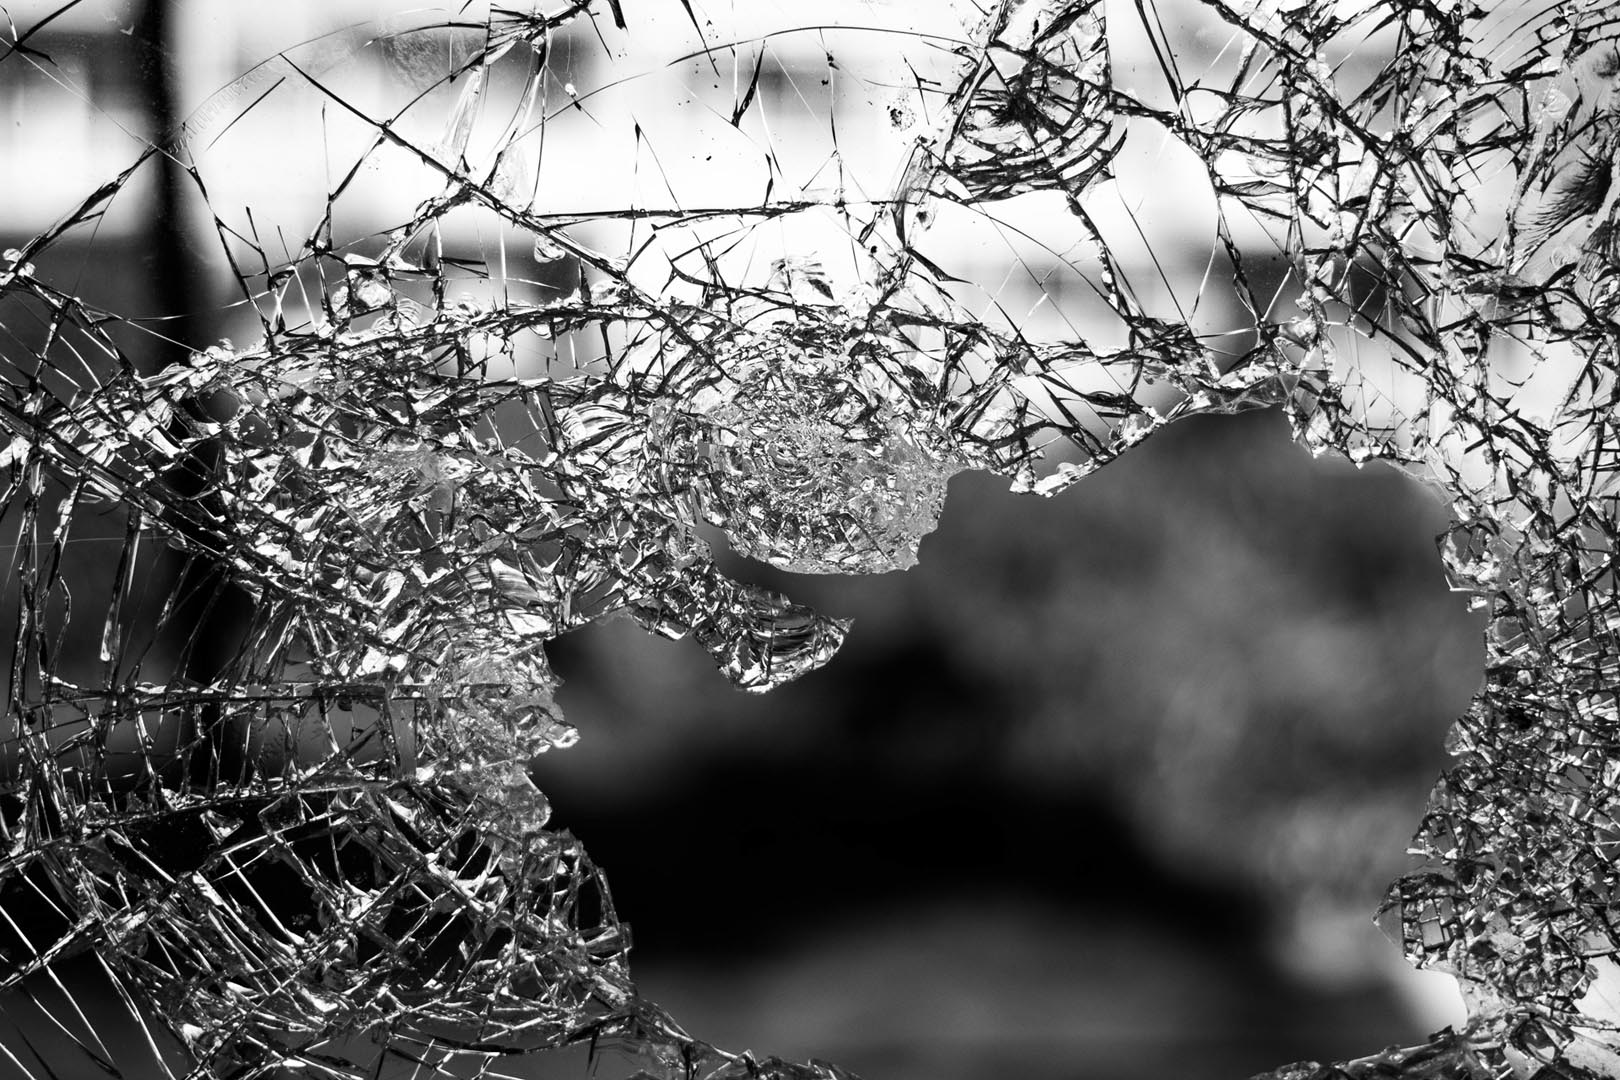 https://pixabay.com/en/glass-shattered-window-destruction-984457/